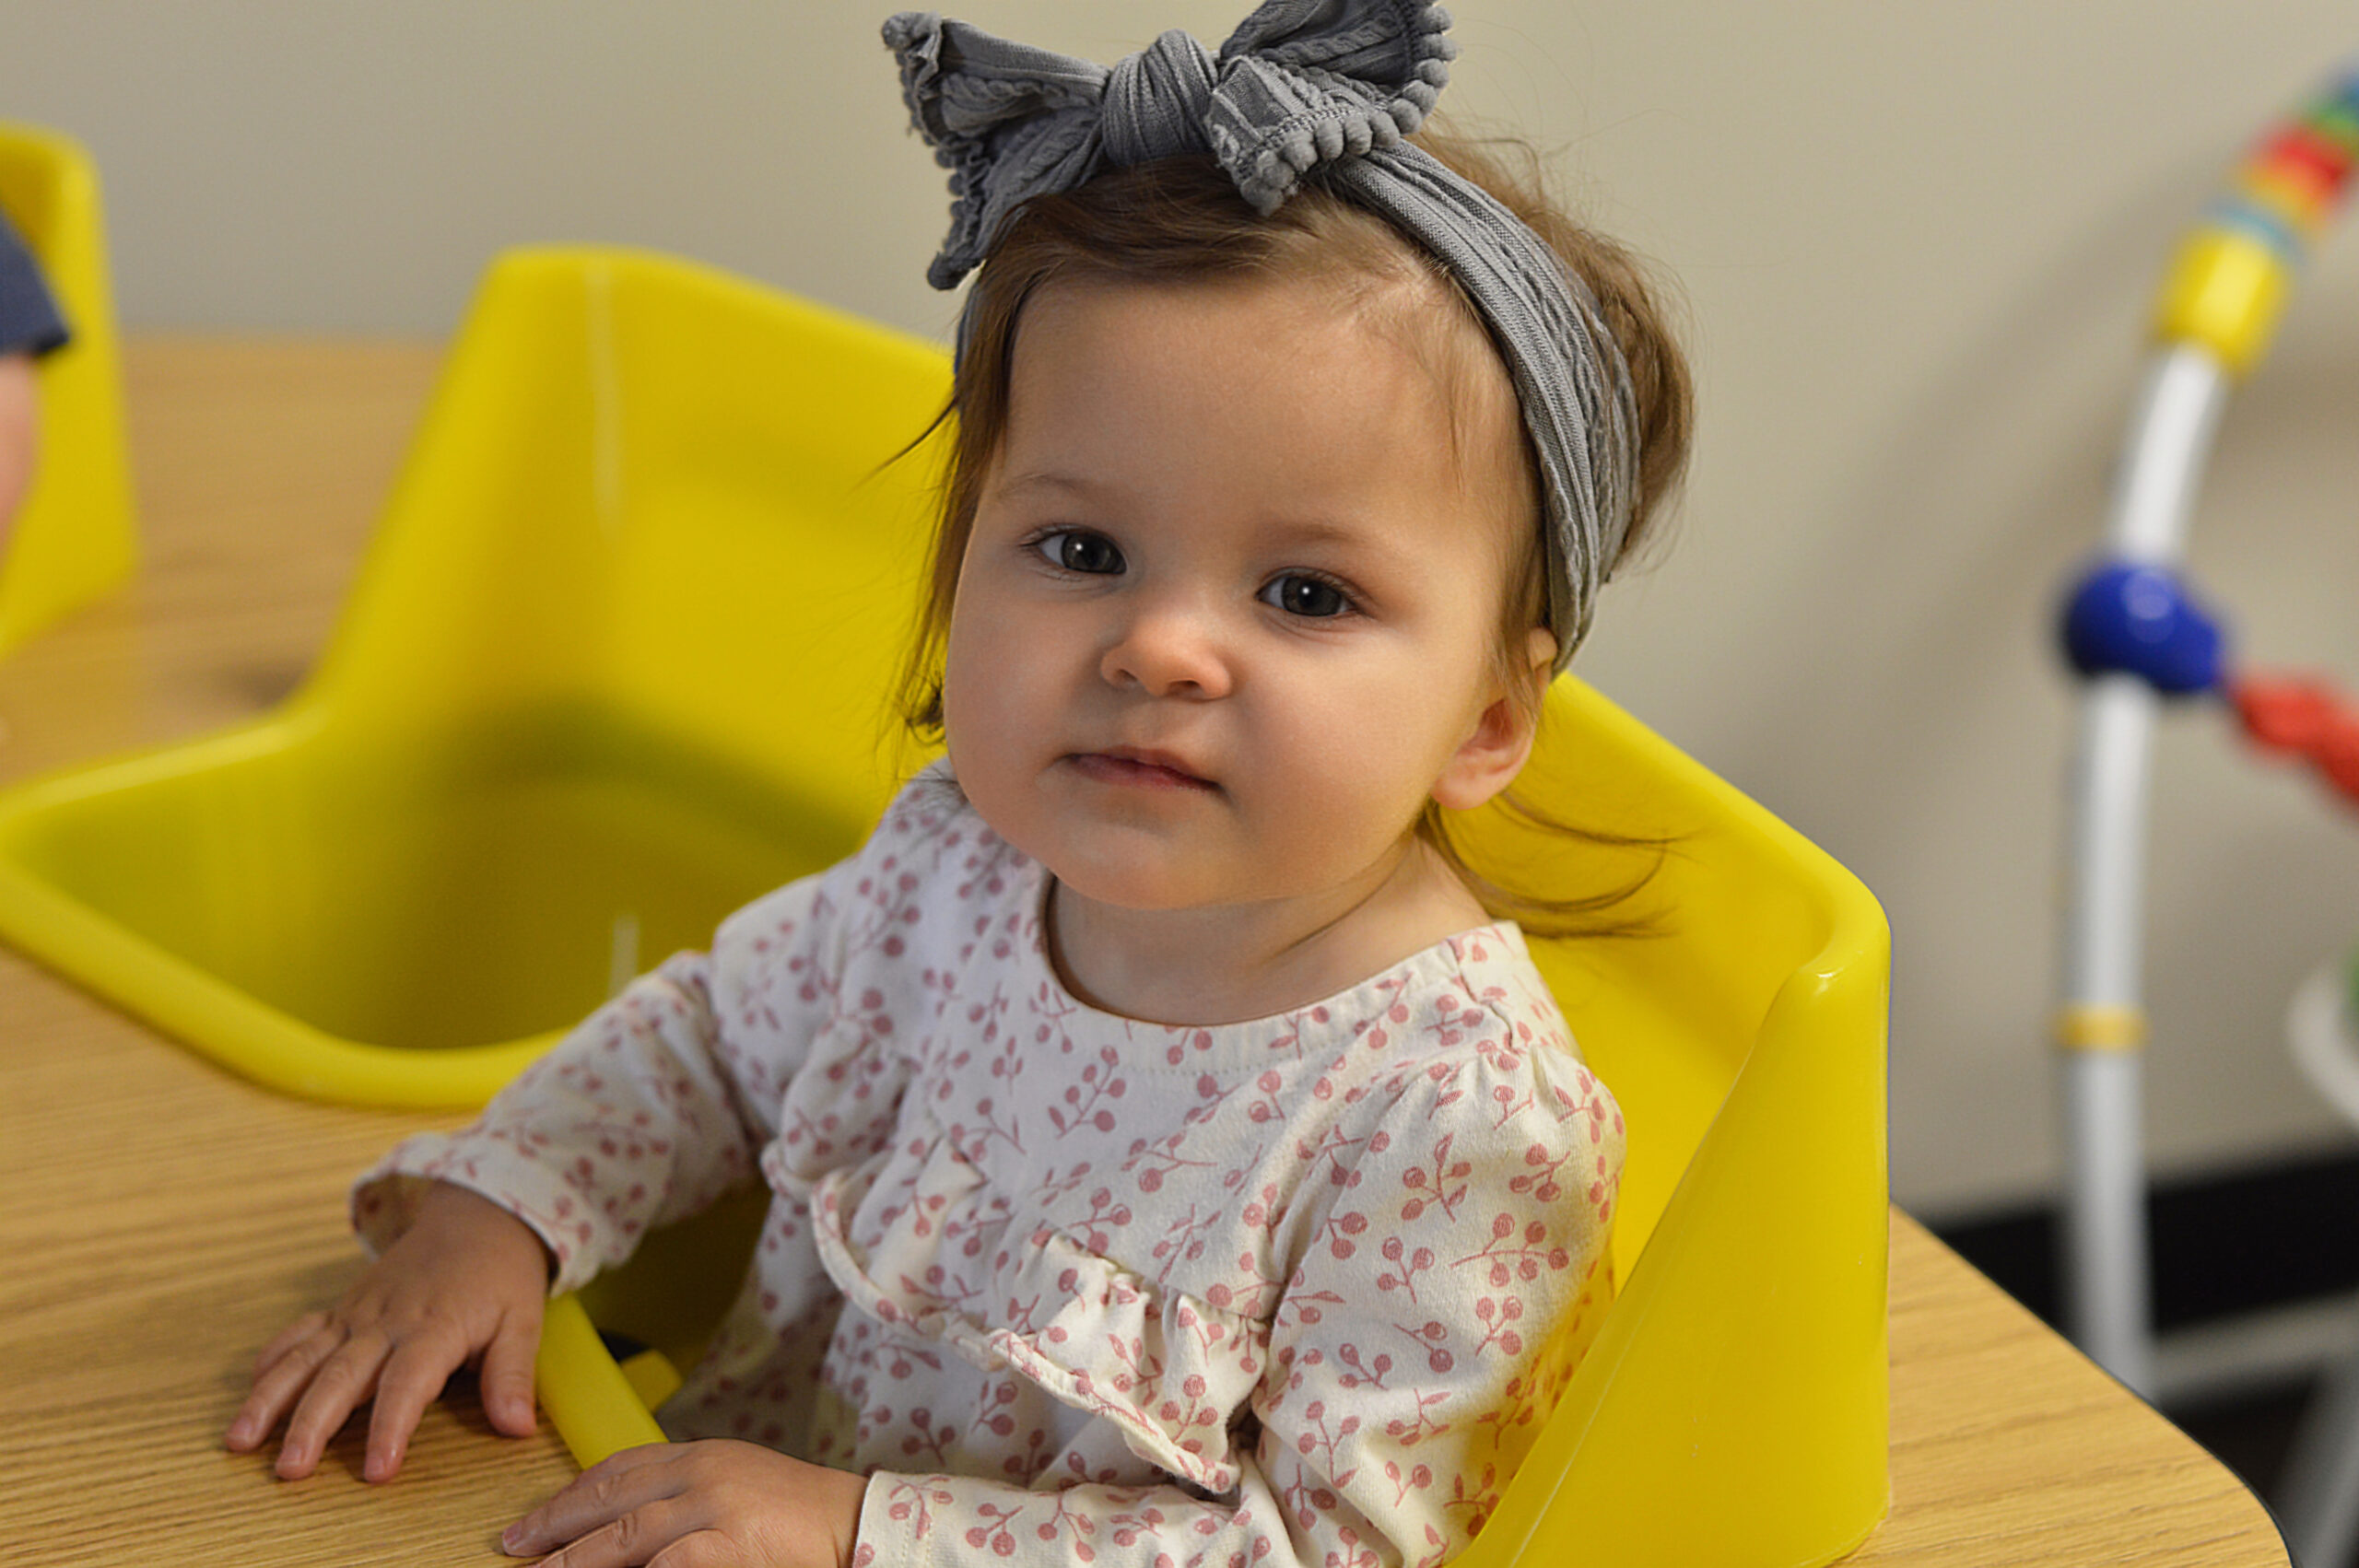 In our Nursery class, our goal is to create a peaceful atmosphere and care for your child's physical needs to give them a great first impression of their Heavenly Father.